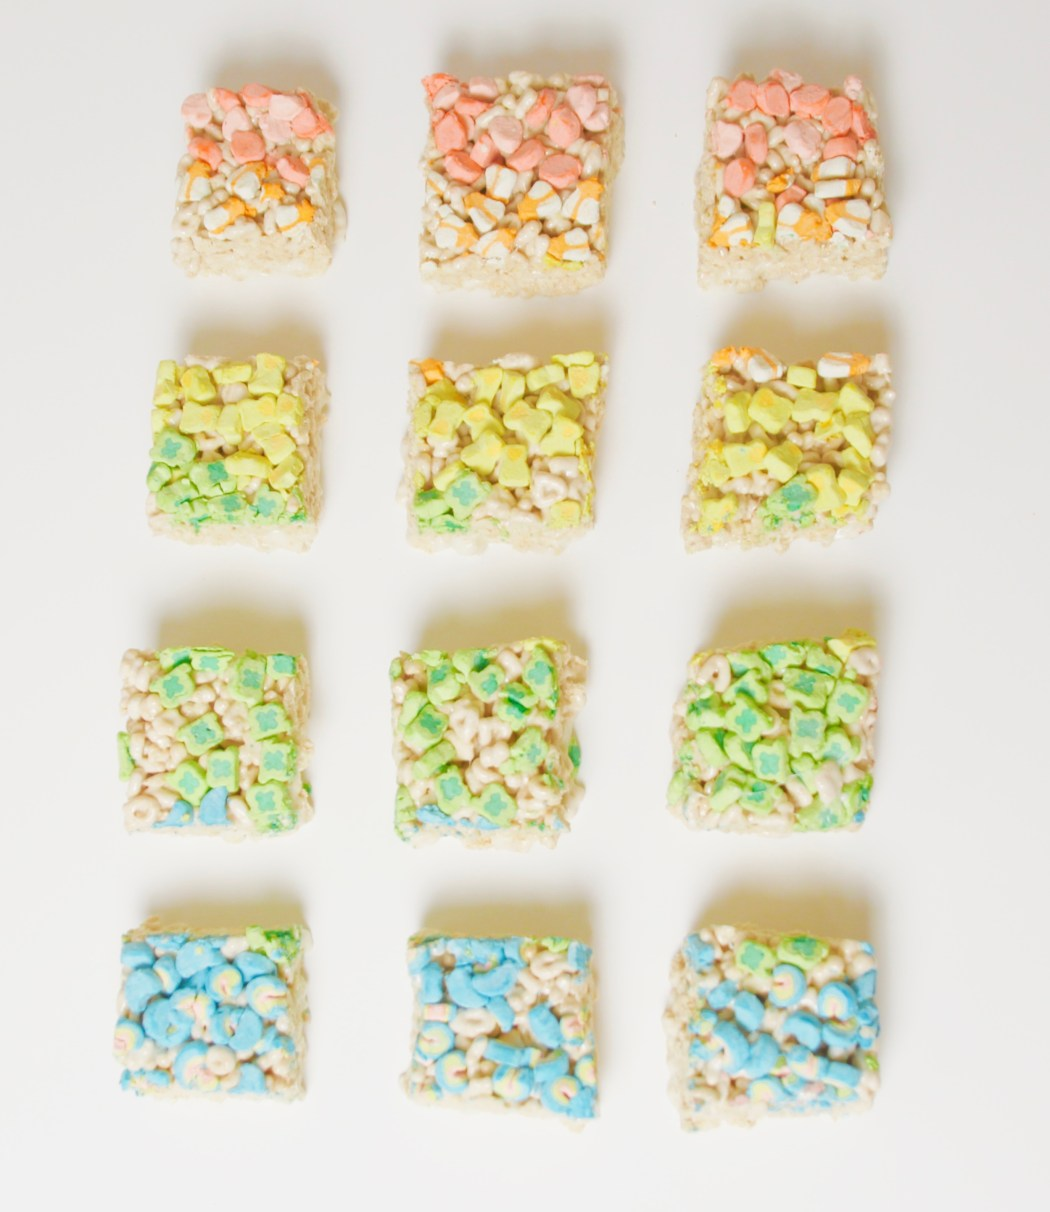 Luck Charms Marshmallow Treats mallow rainbow color gradient st. patrick's day dessert britney termale lifestyle blog dessert recipe